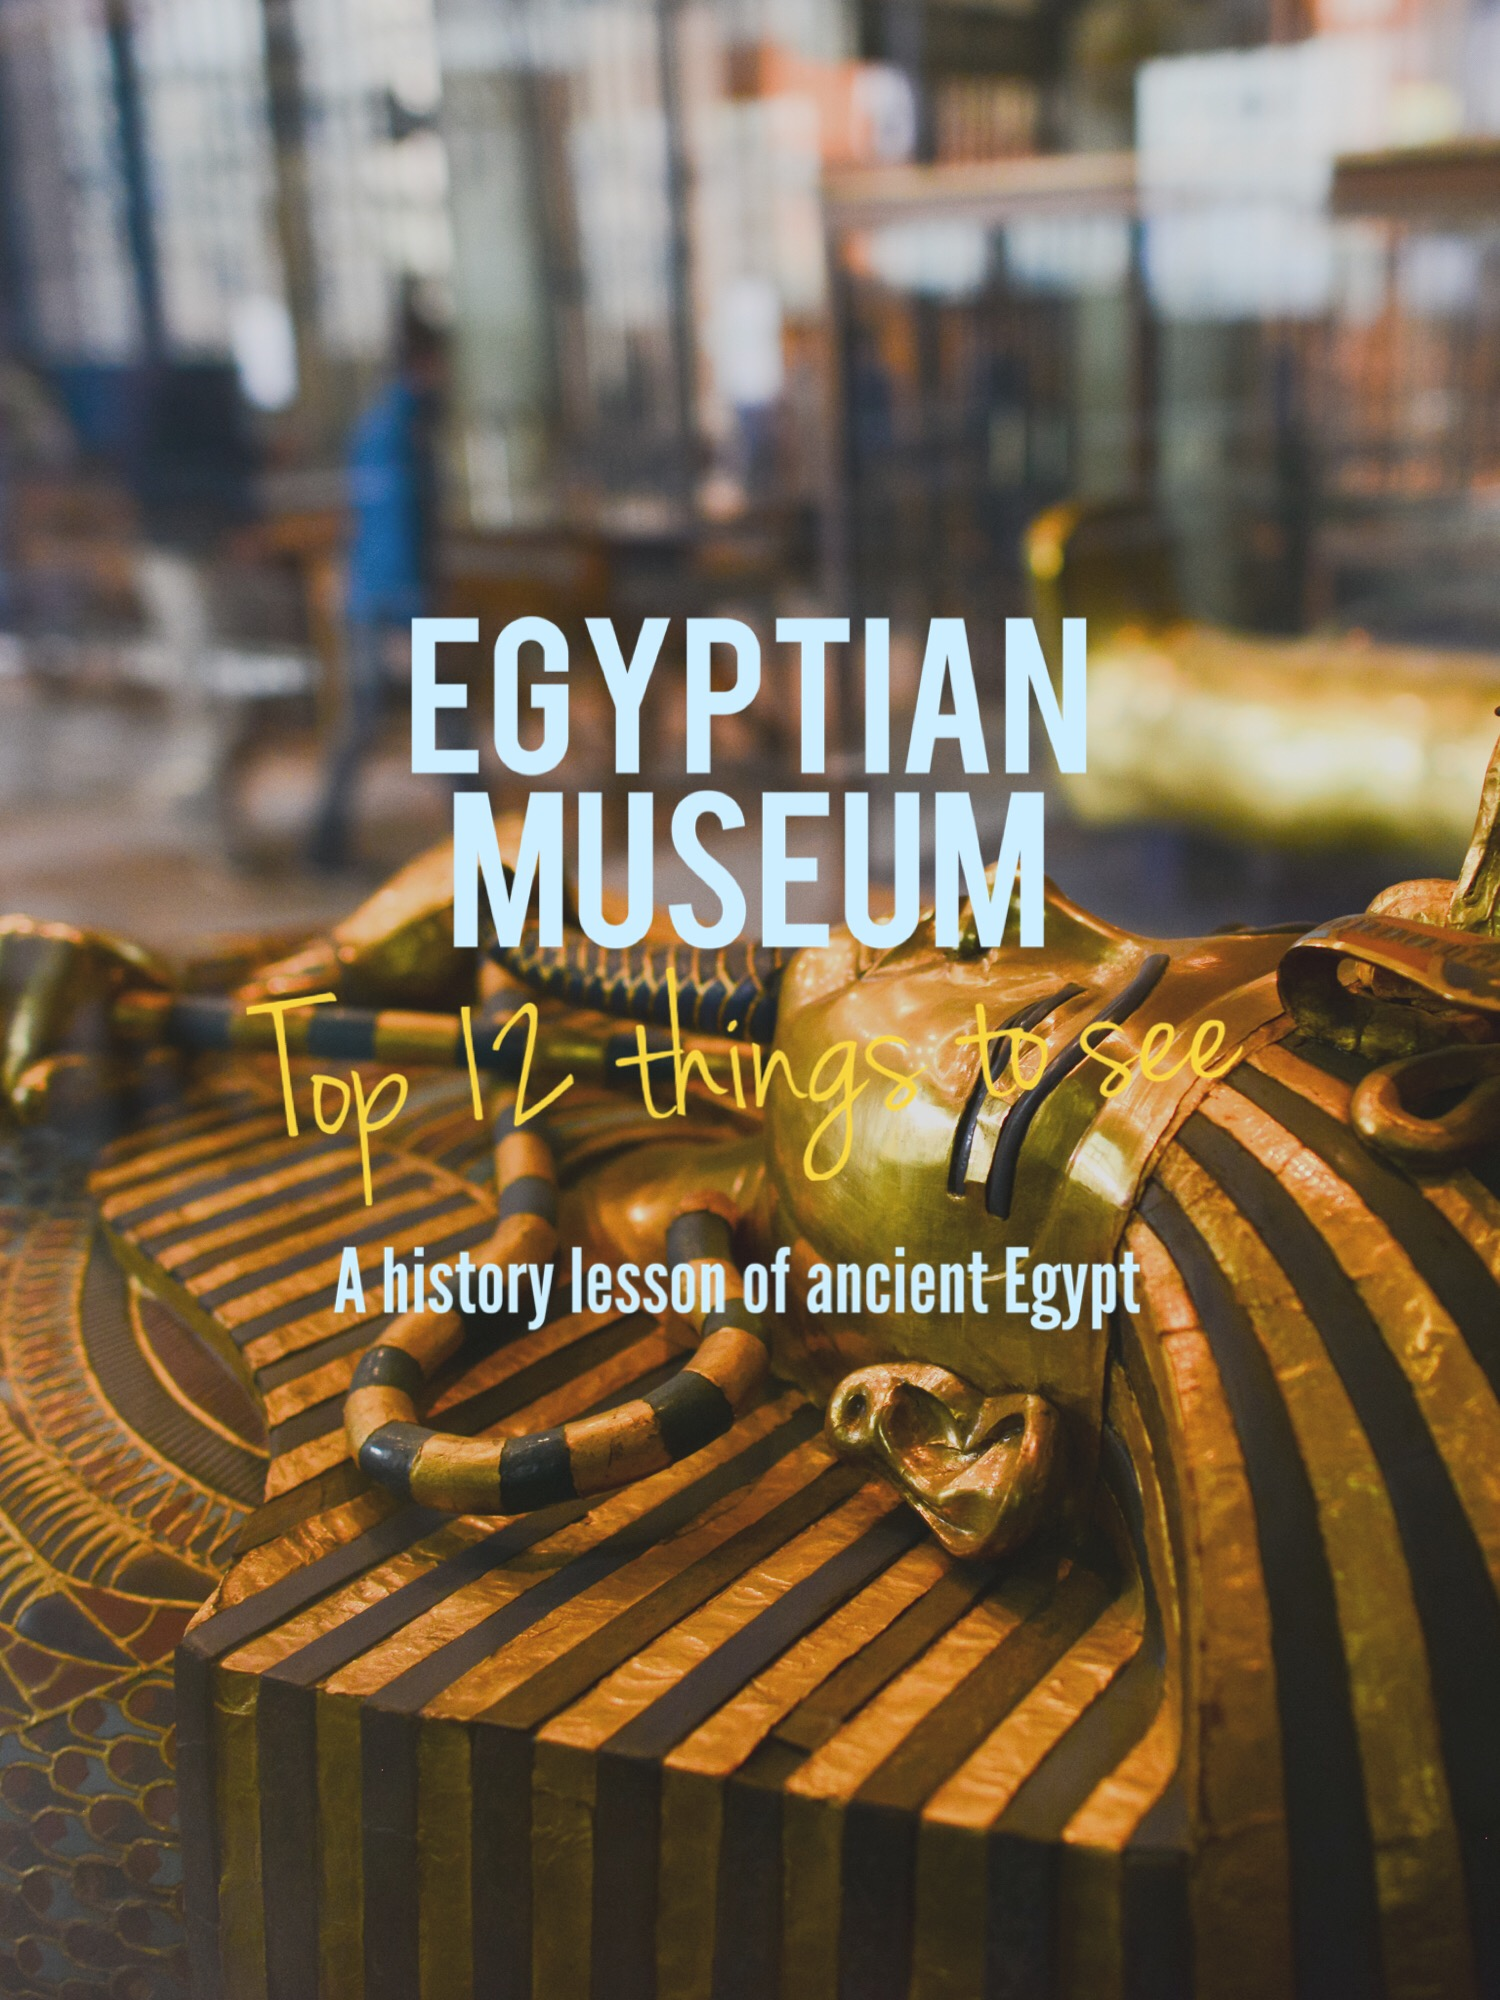 A History Lesson at the Egyptian Museum